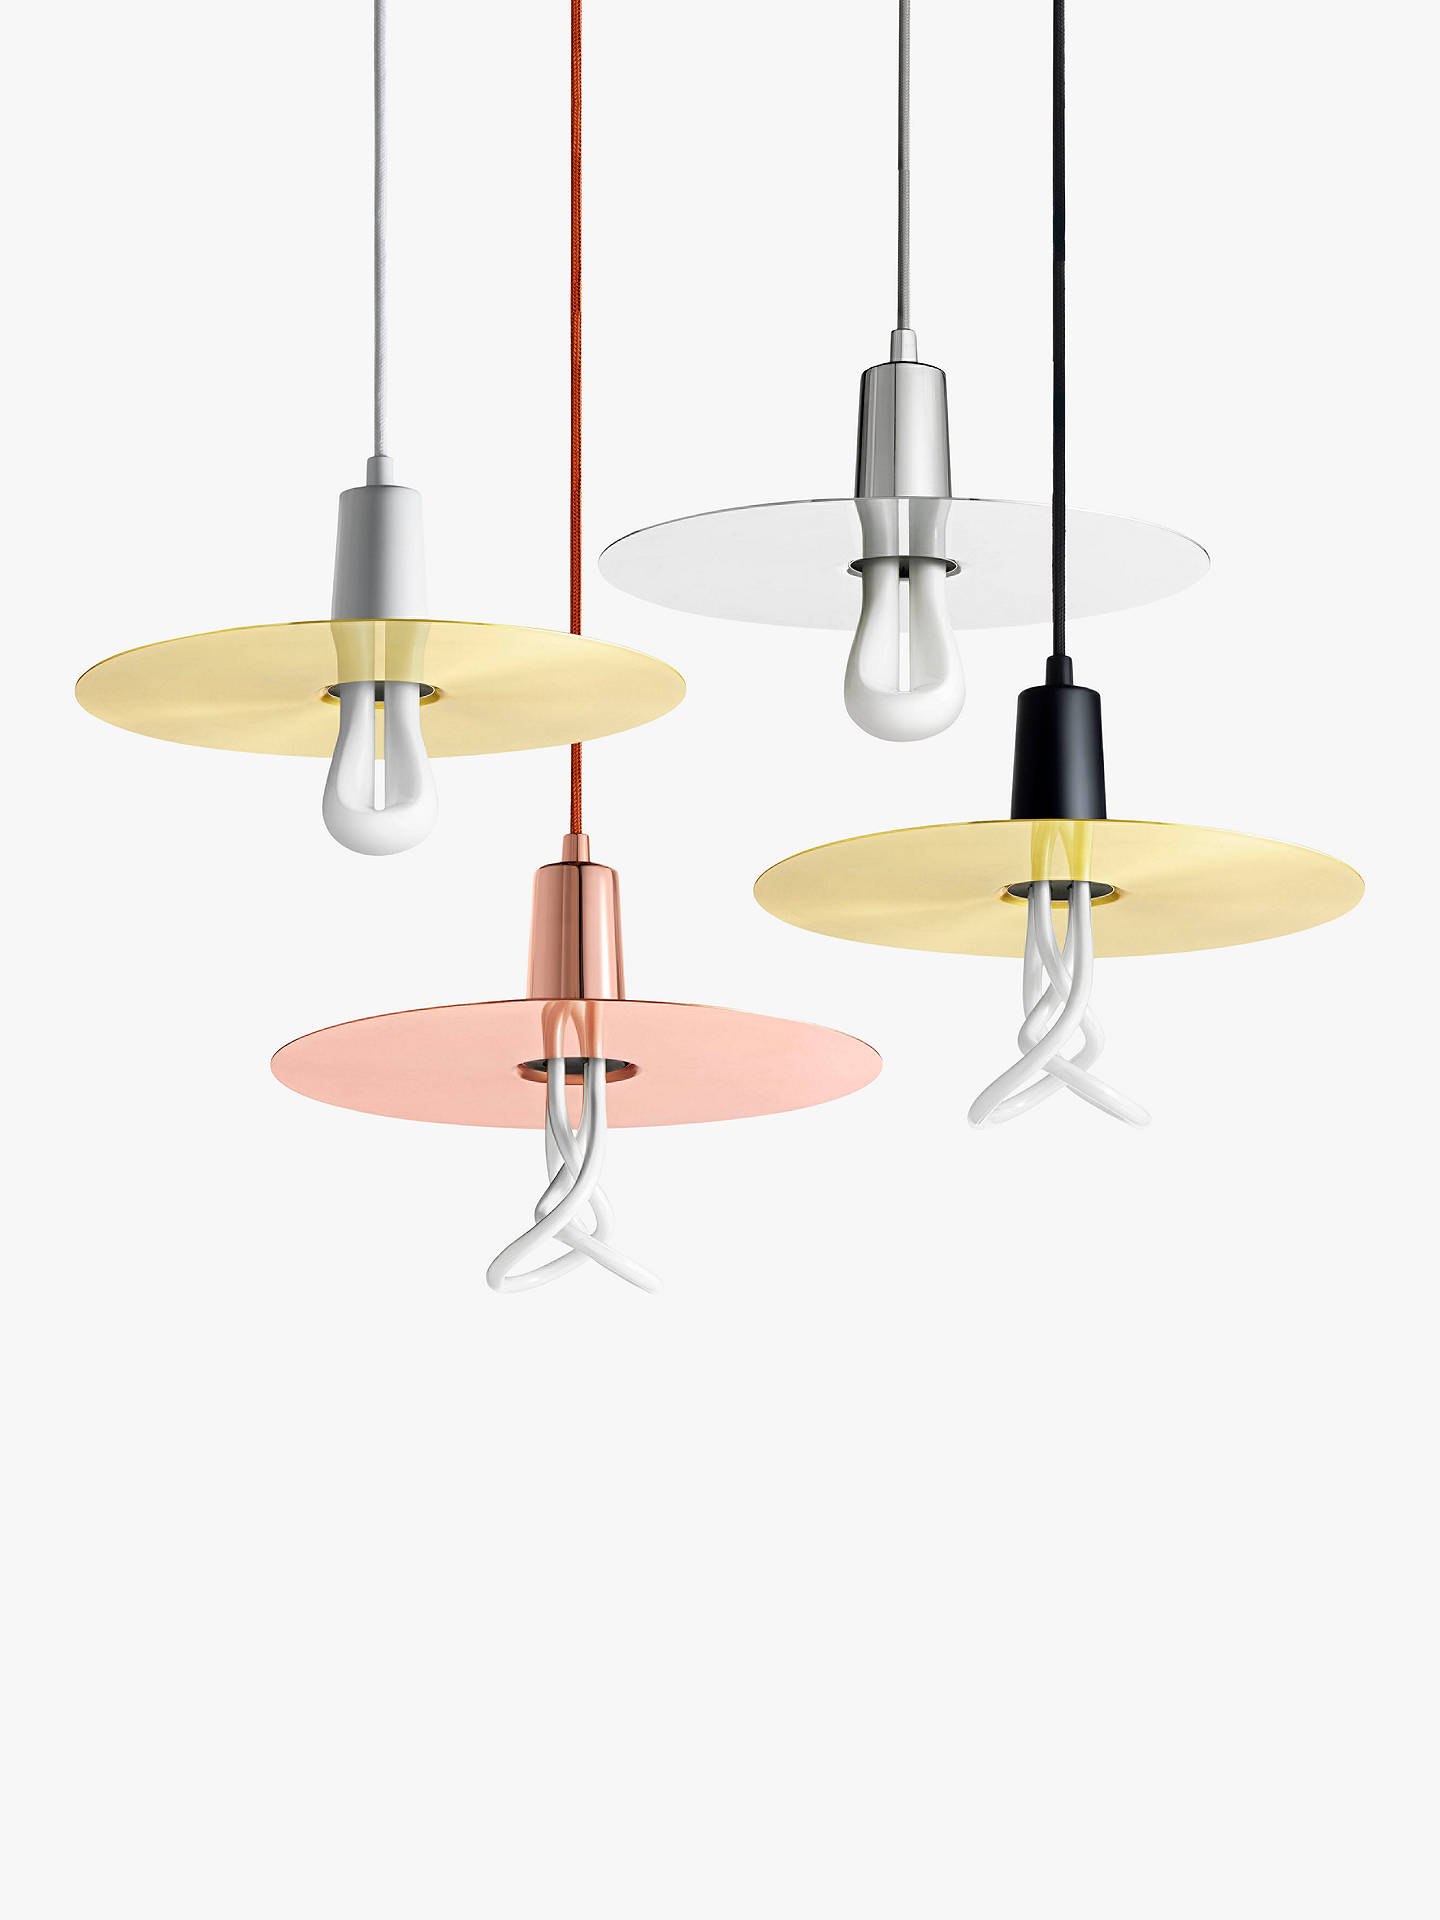 BuyPlumen 15W ES Low Energy Decorative Bulb Online at johnlewis.com